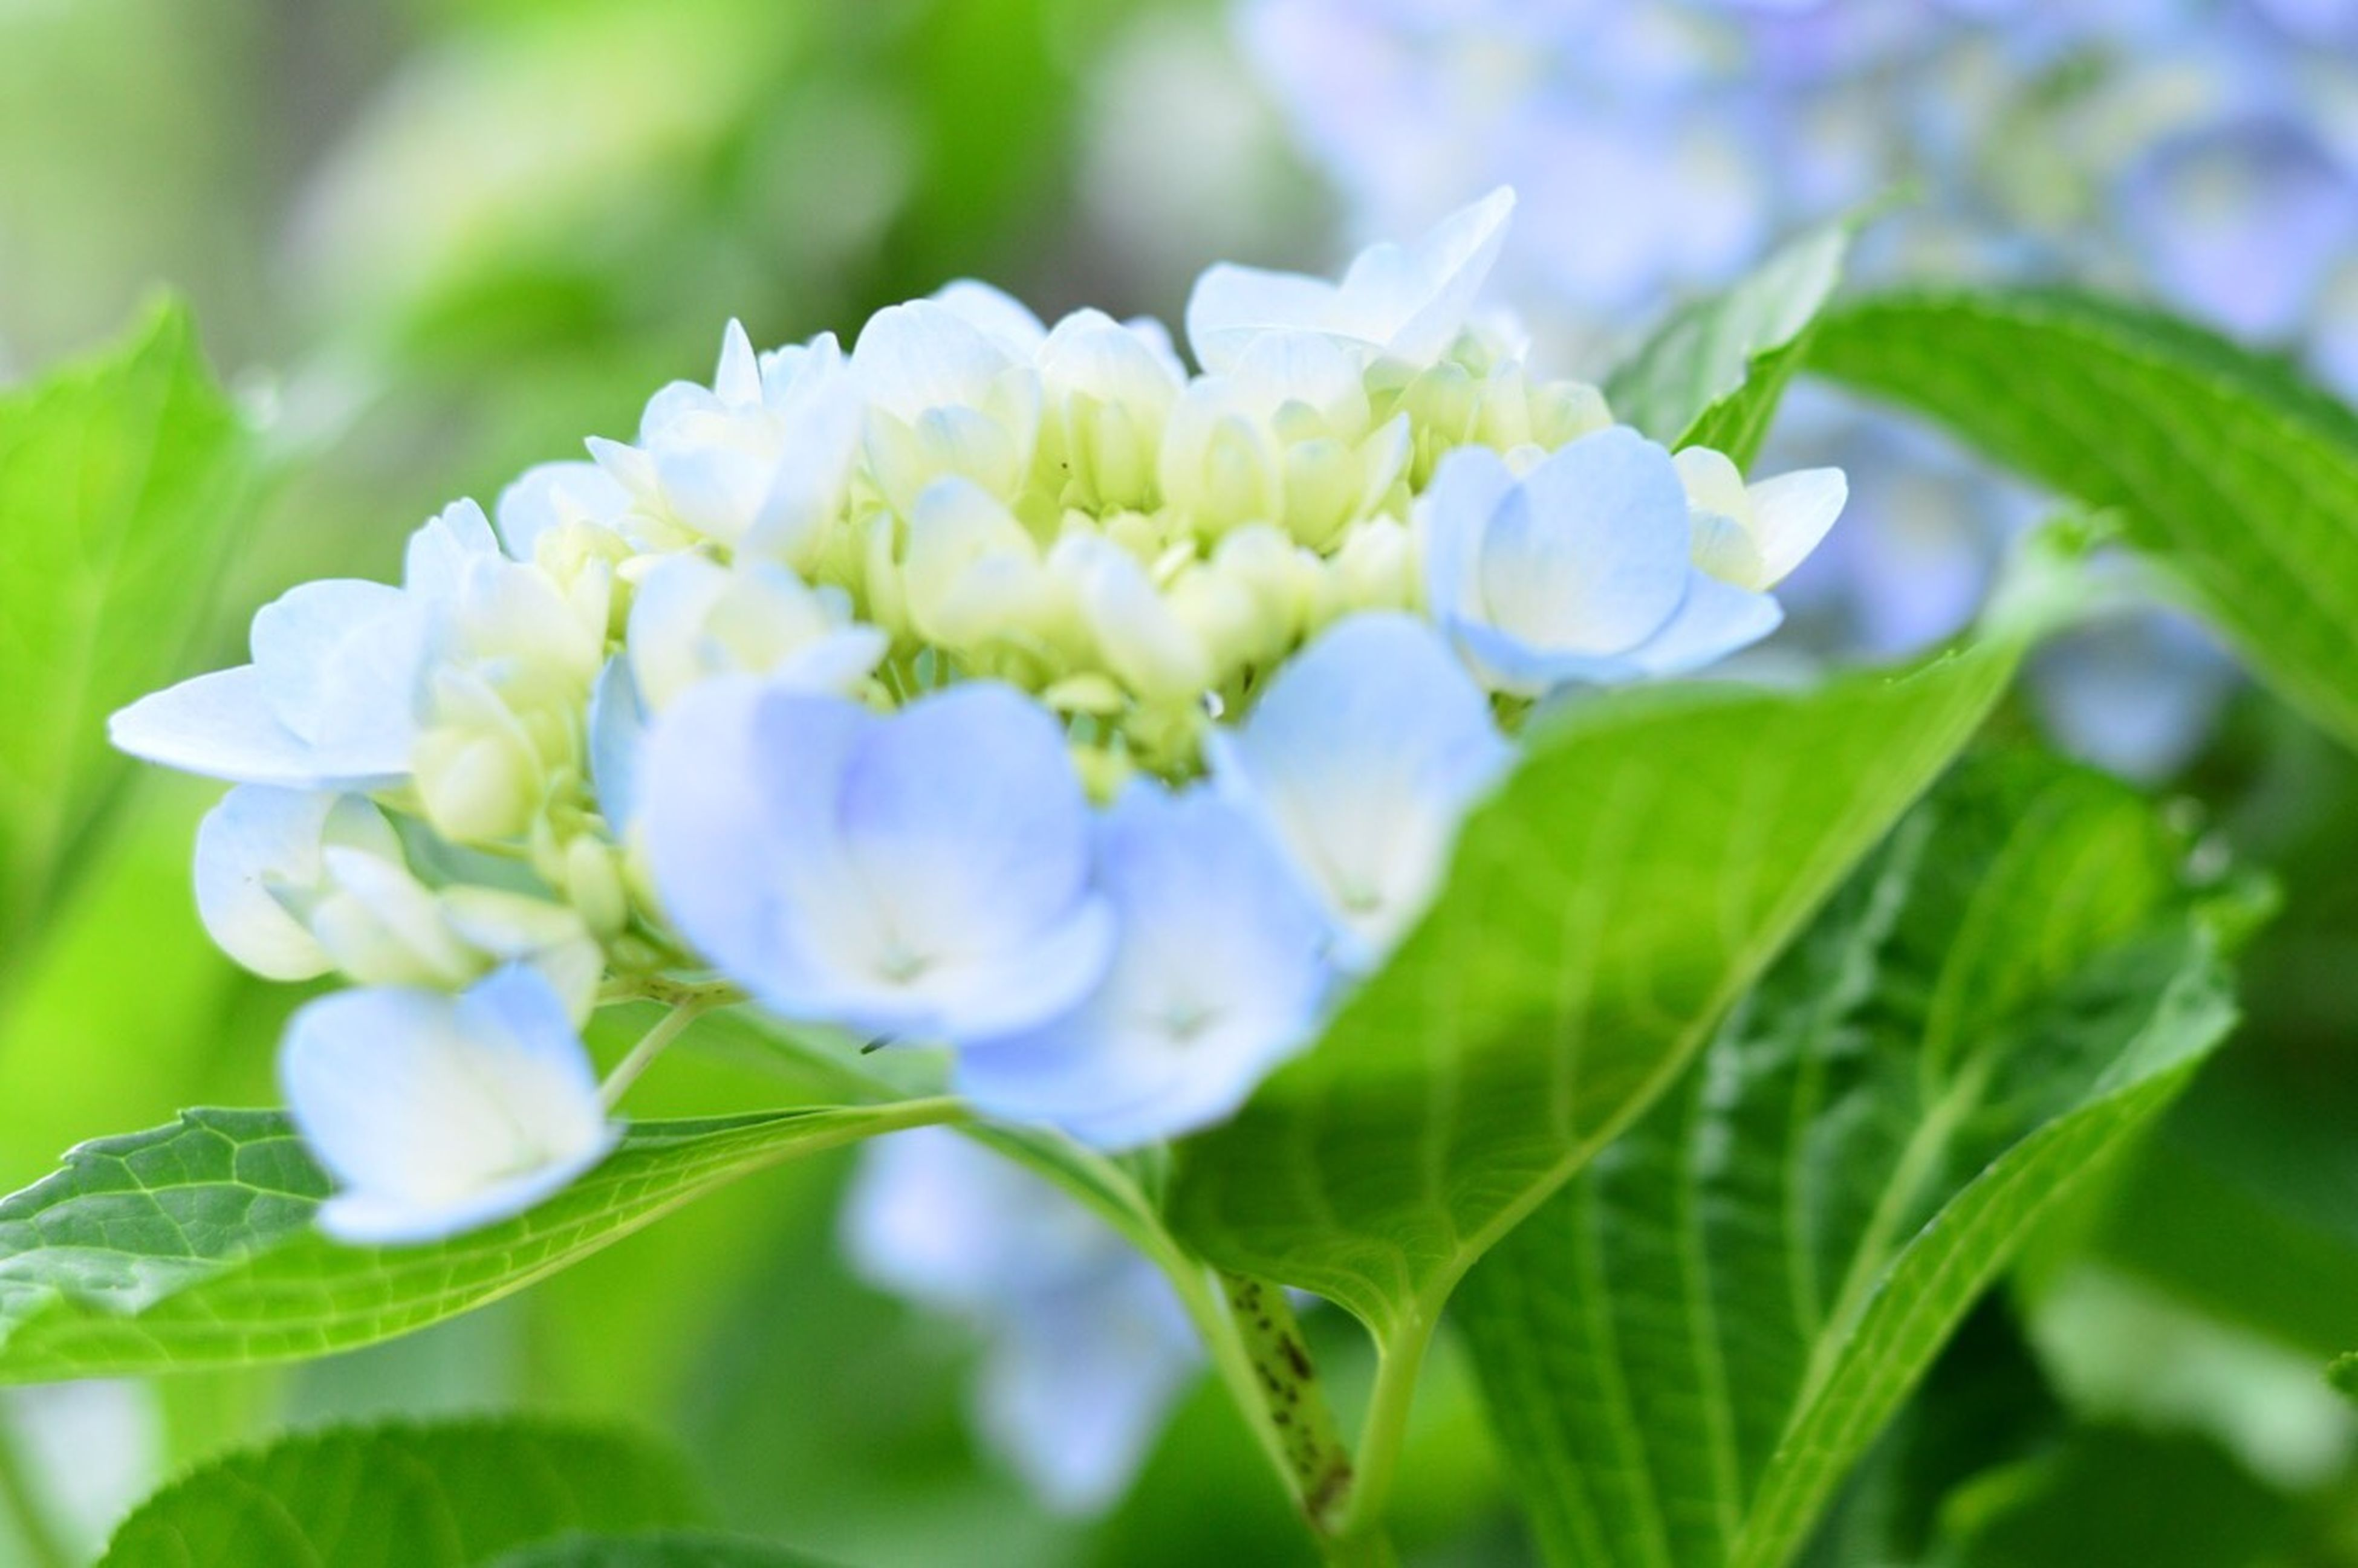 freshness, flower, growth, fragility, petal, leaf, beauty in nature, close-up, plant, flower head, focus on foreground, nature, blooming, green color, bud, white color, selective focus, in bloom, blossom, stem